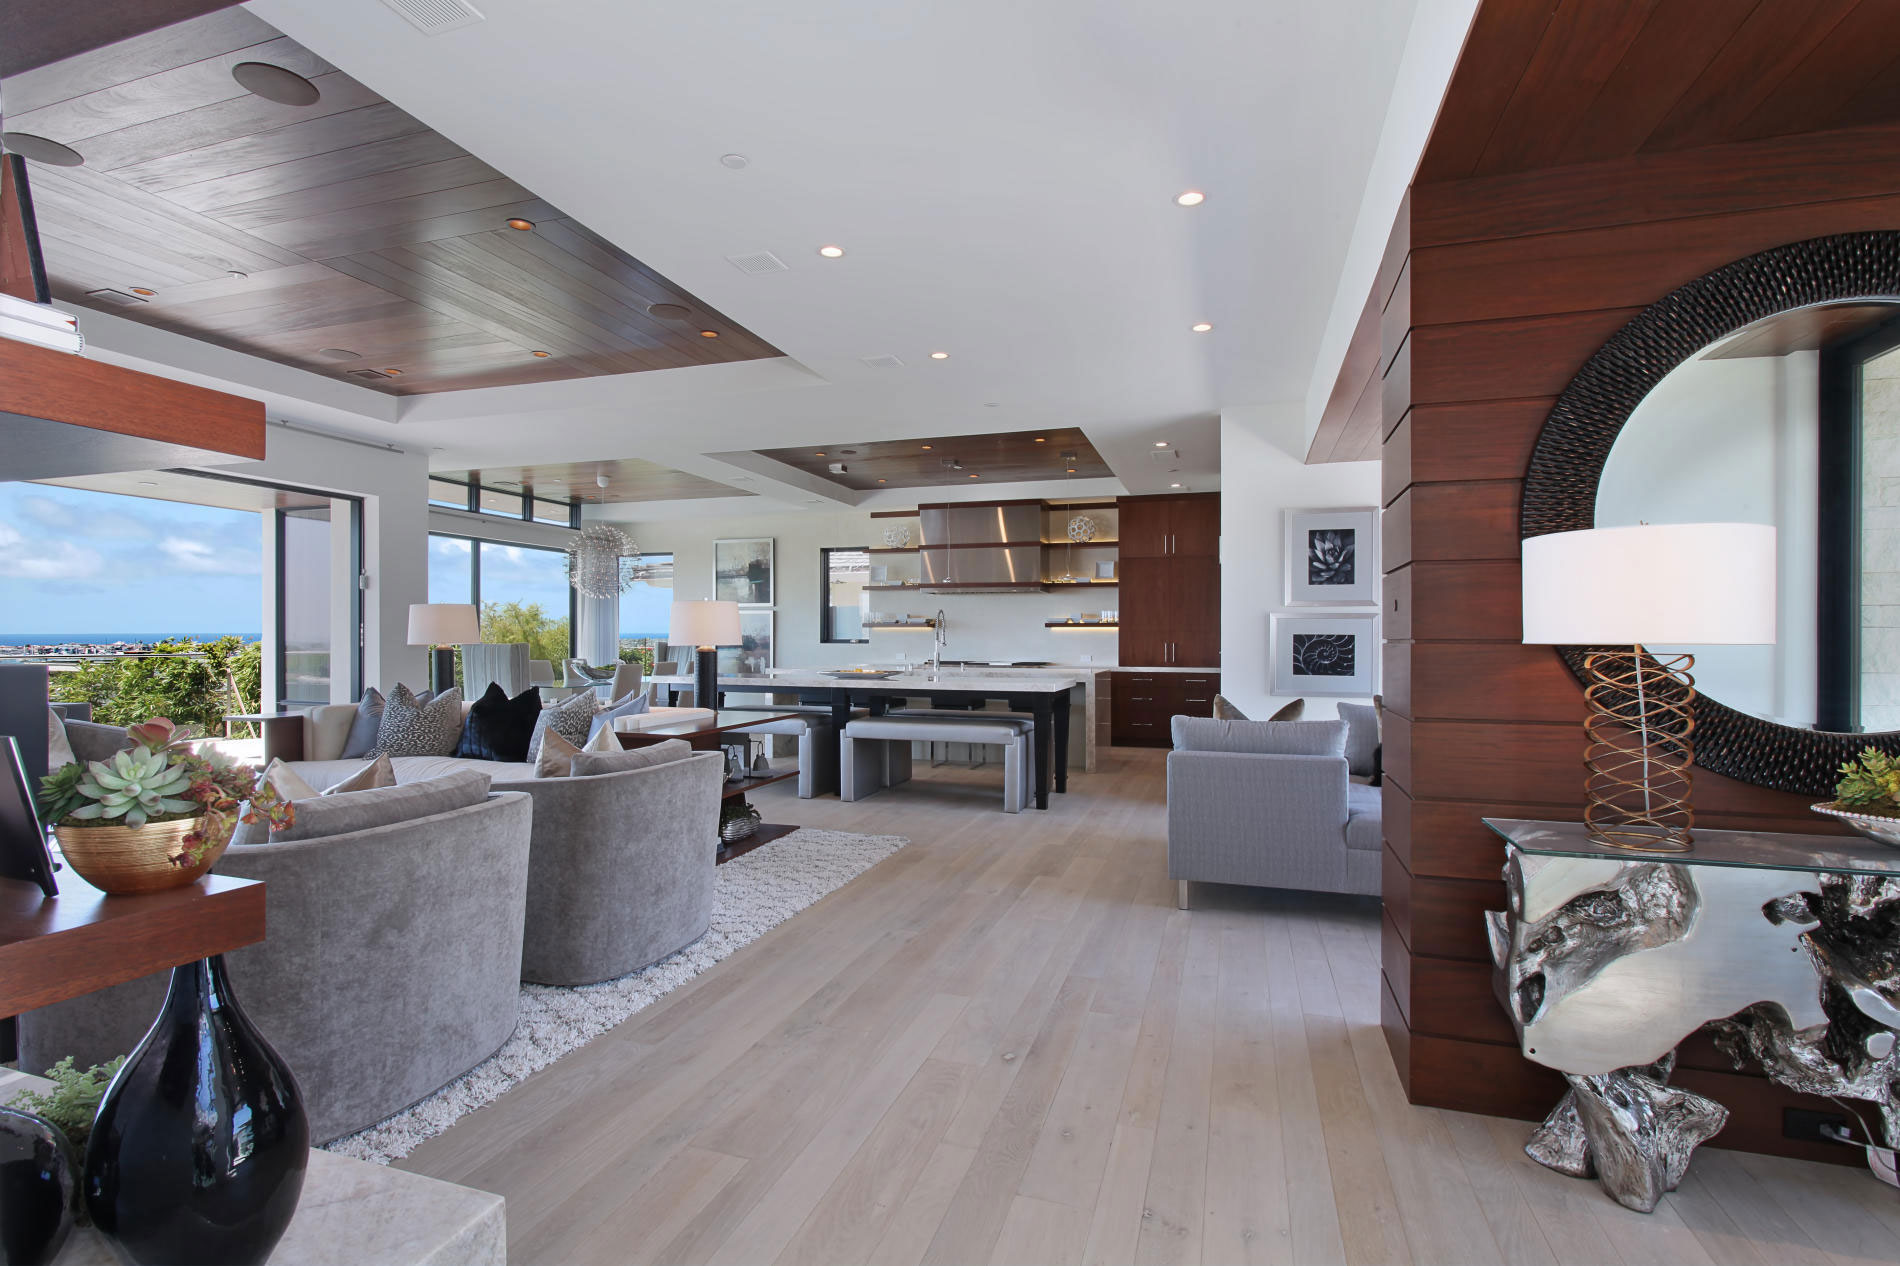 Open Plan Living, Sofas, Mirror, Table Lighting, Home in Corona del Mar, California